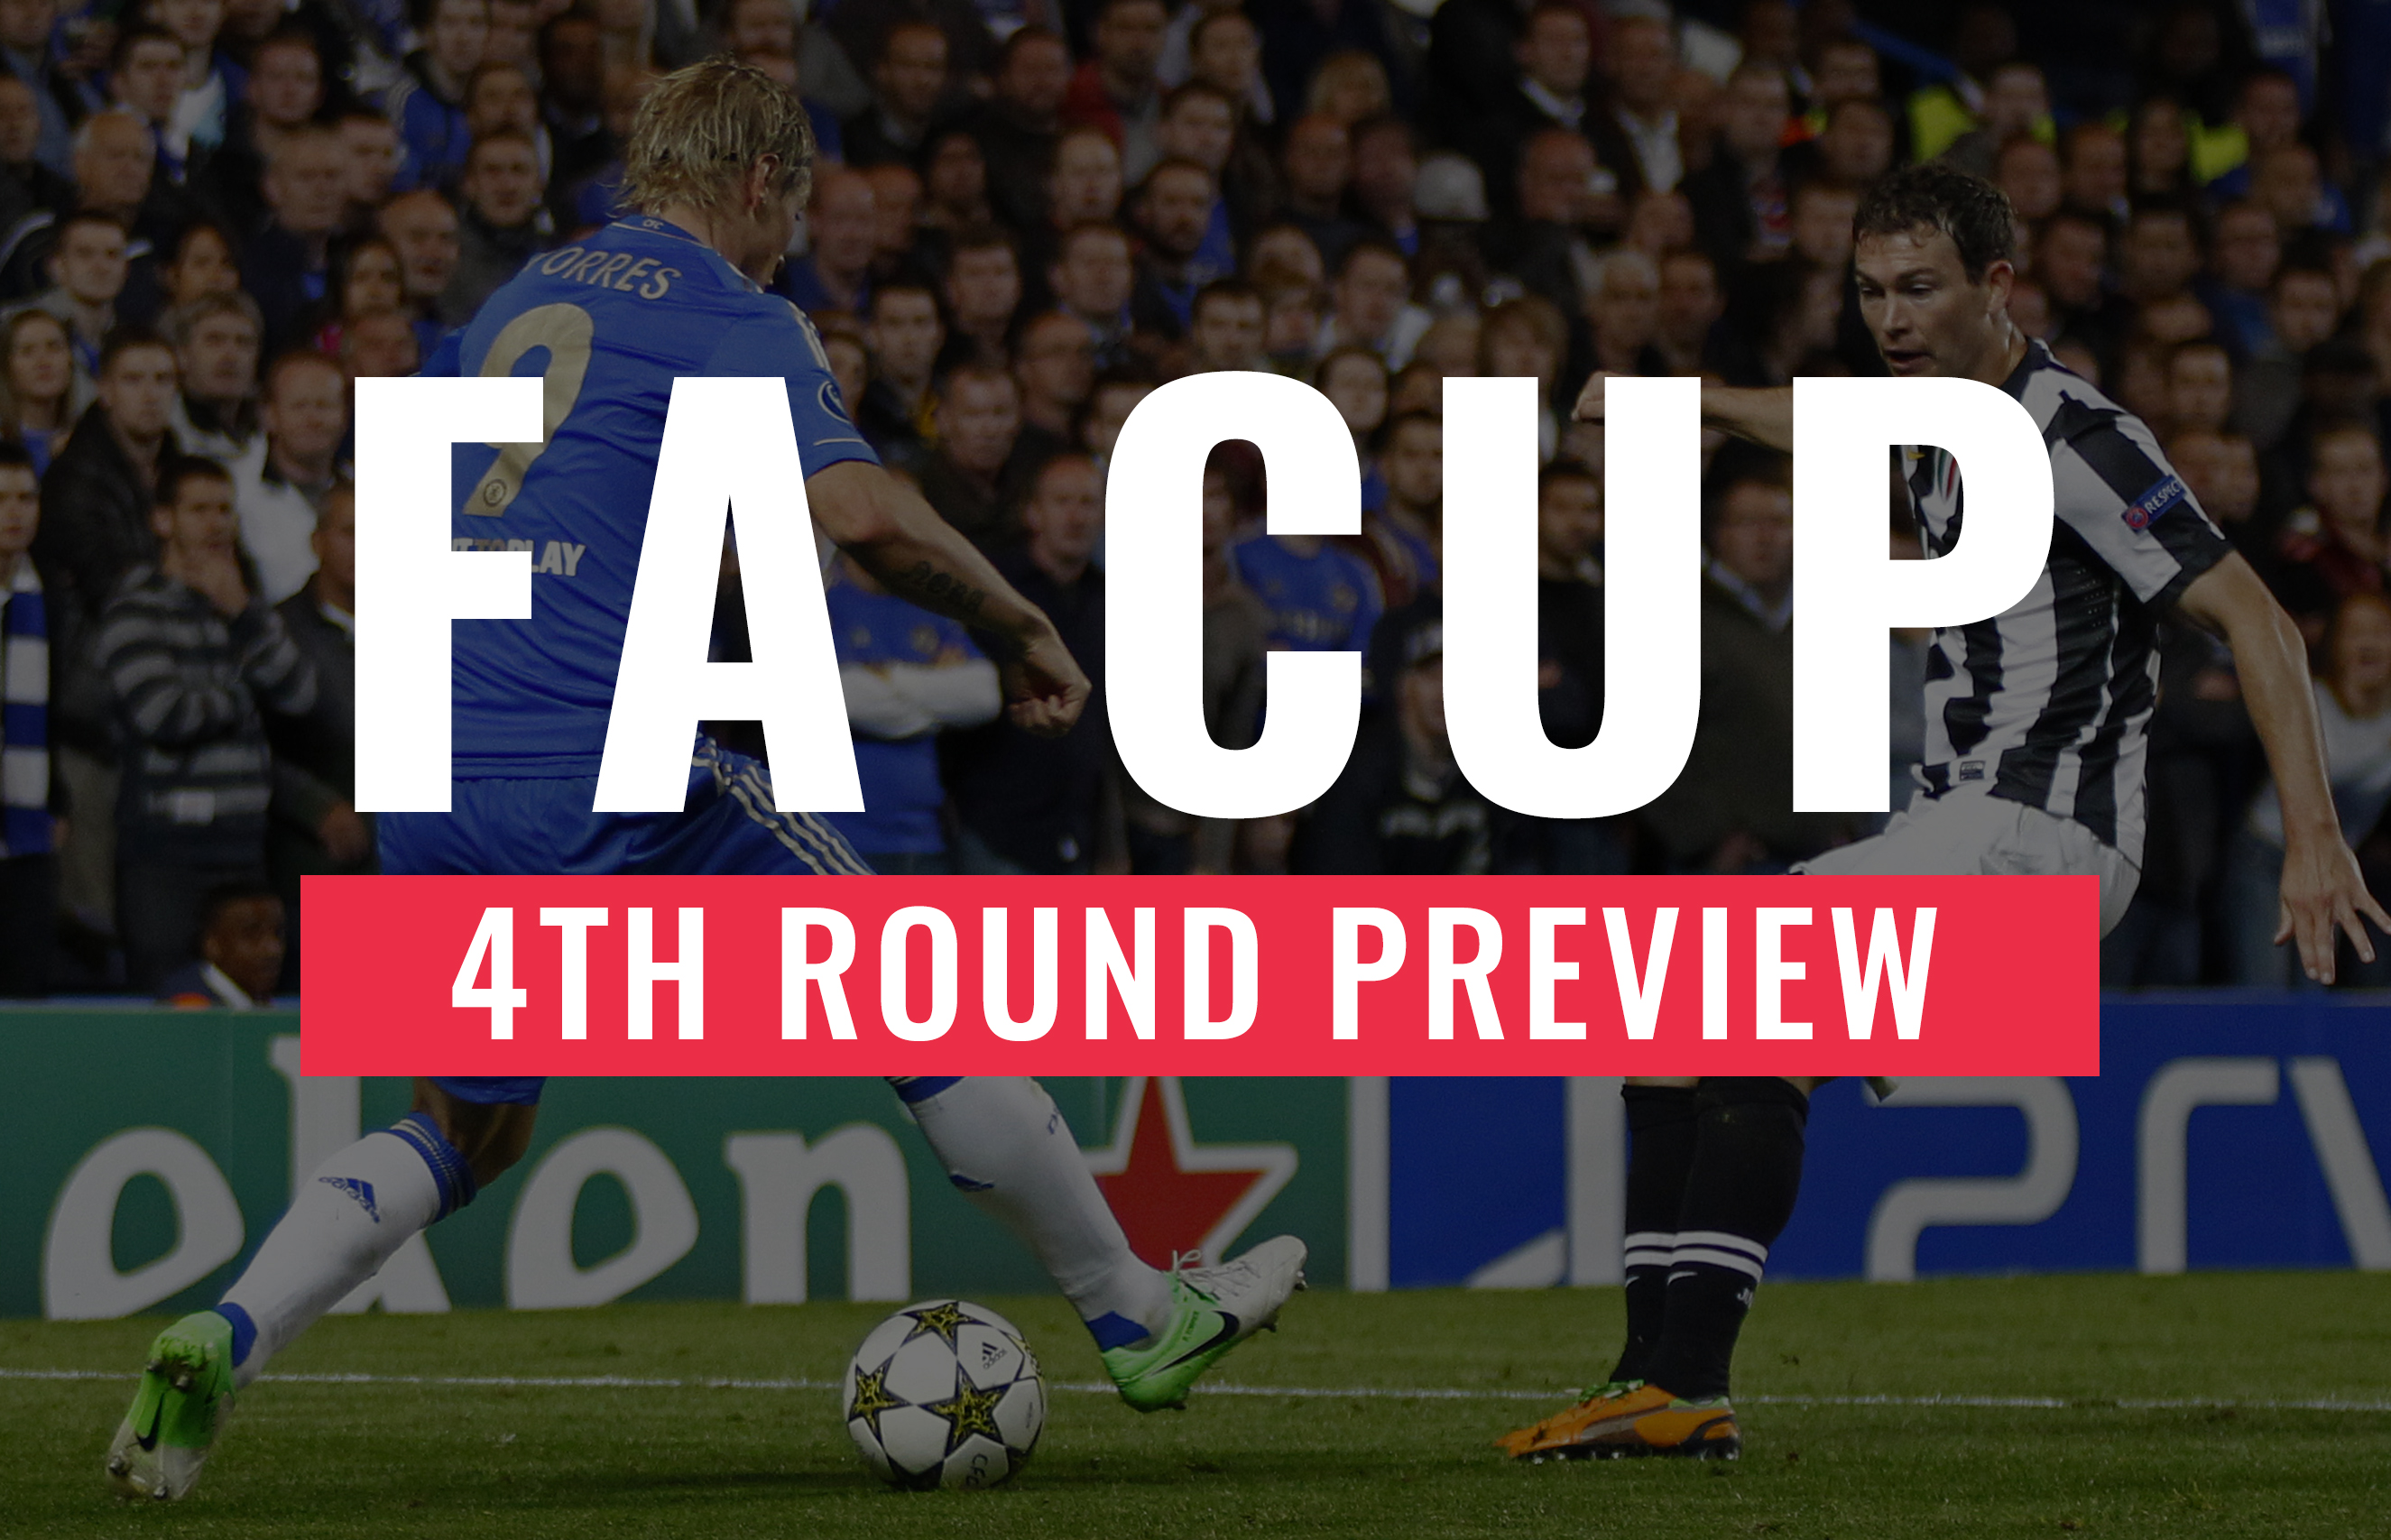 FA Cup 4th Round Calendar and Predictions